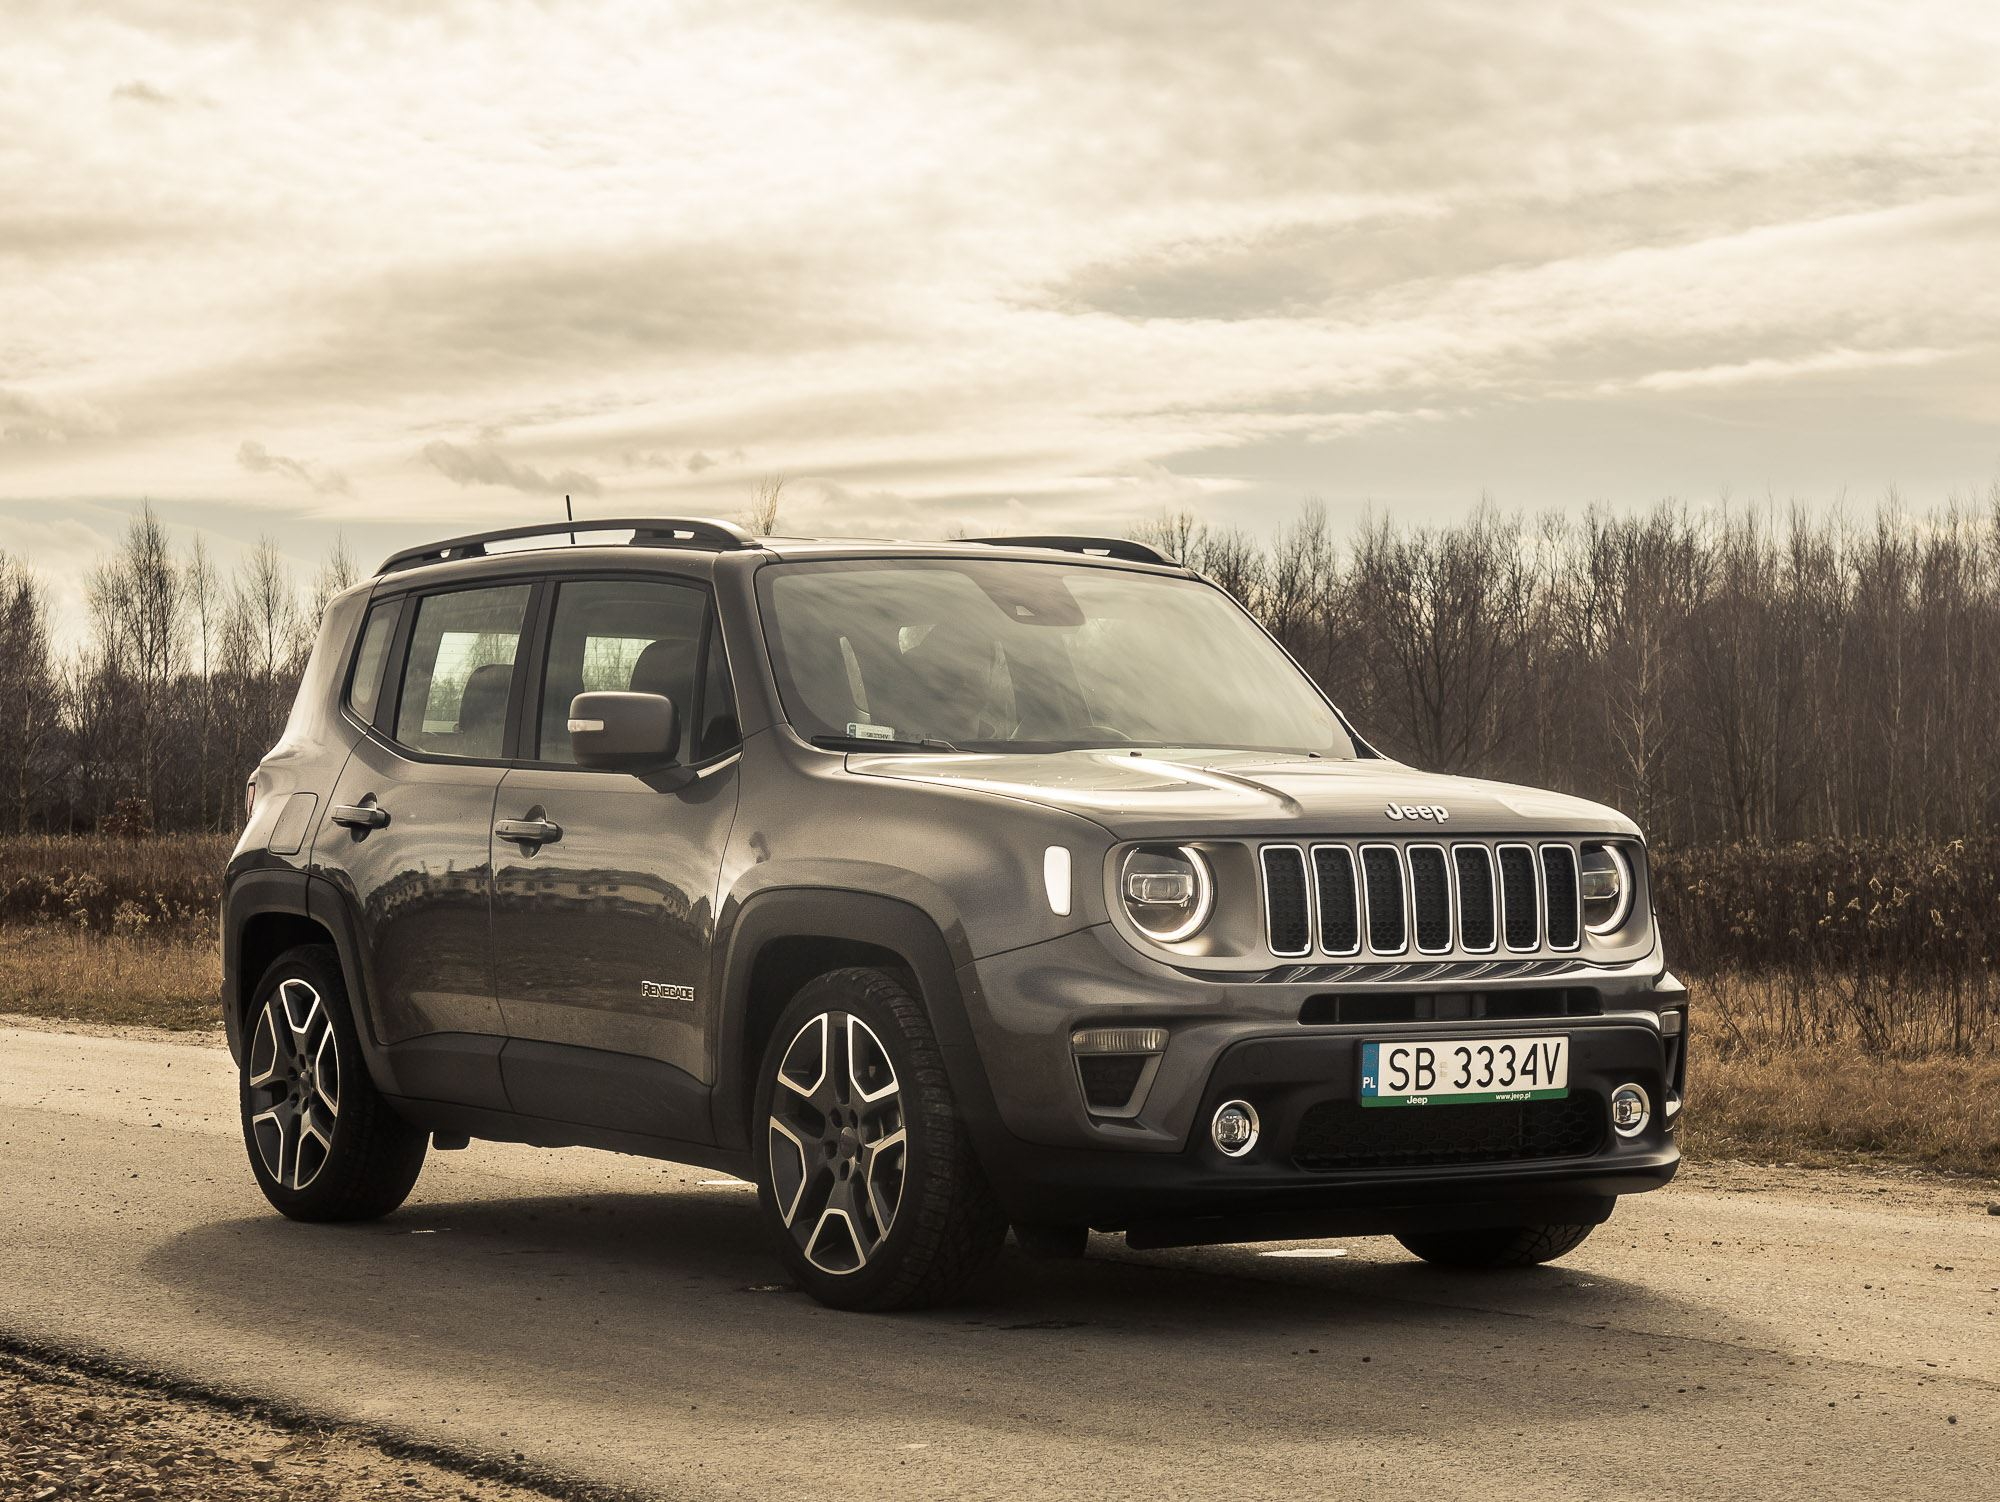 Jeep Renegade 2019 test 1.3 Firefly